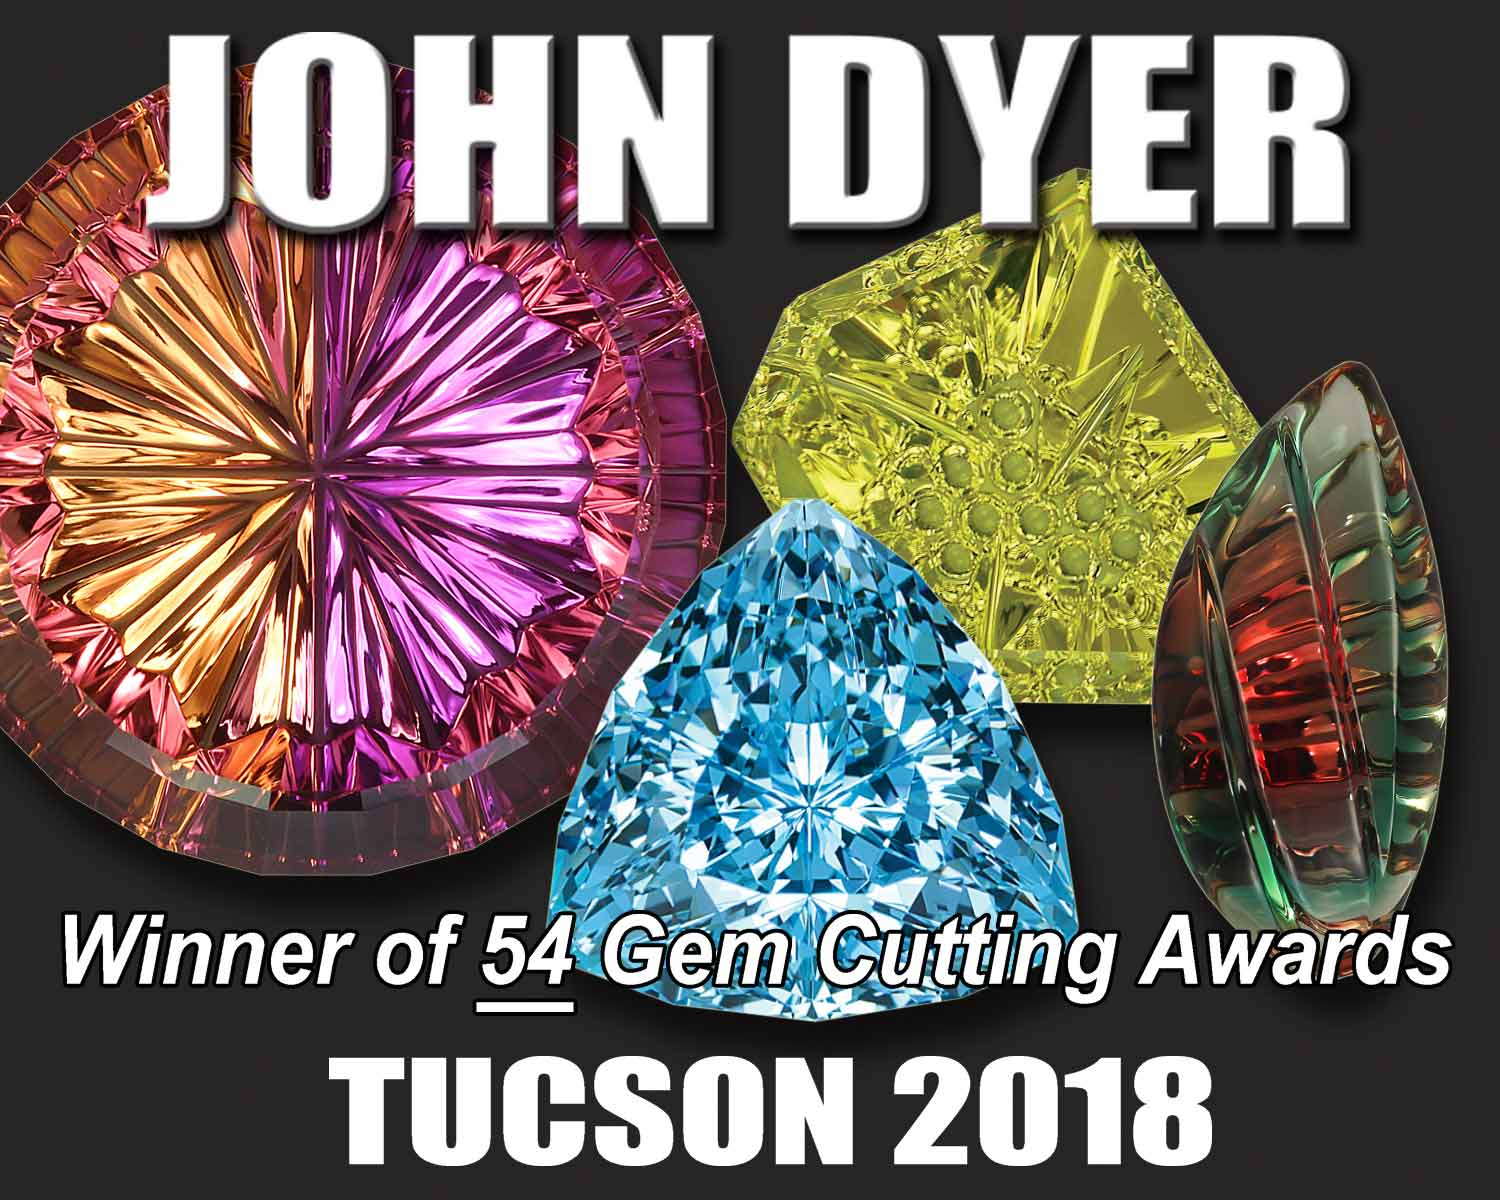 John Dyer's locations at the Tucson Gem Shows